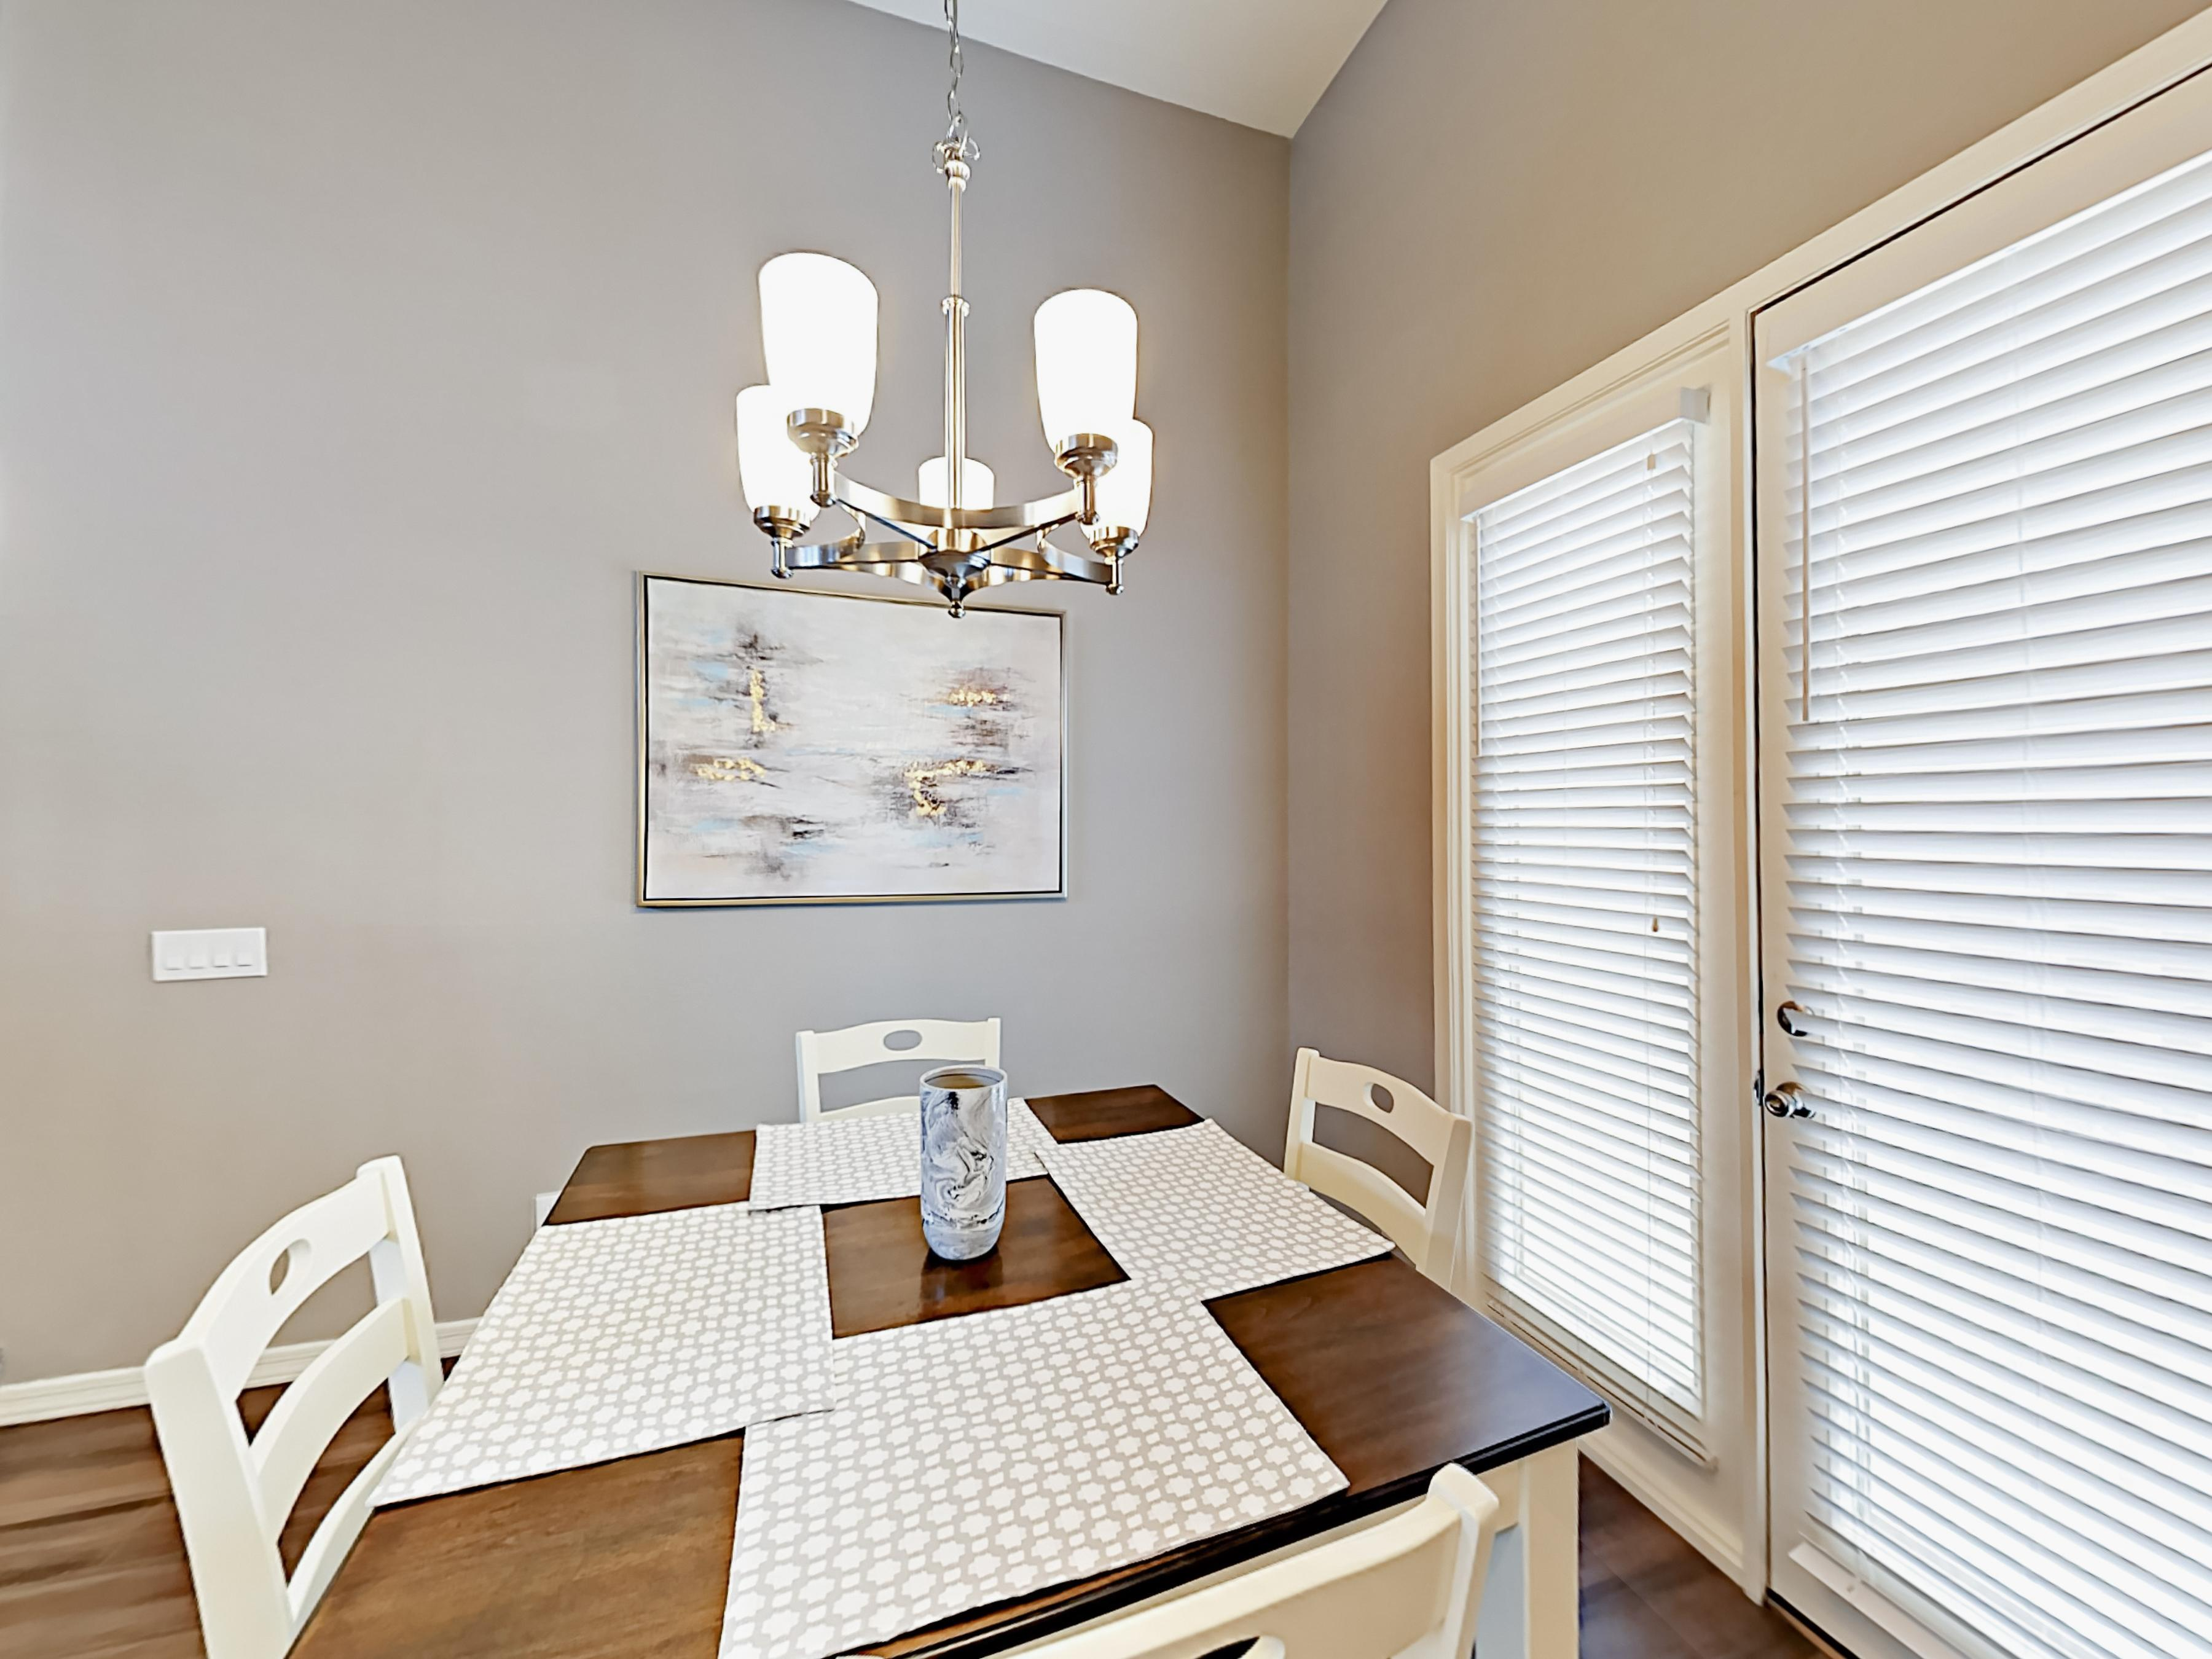 Plenty of natural light in the dining area, thanks to French doors and high ceilings.